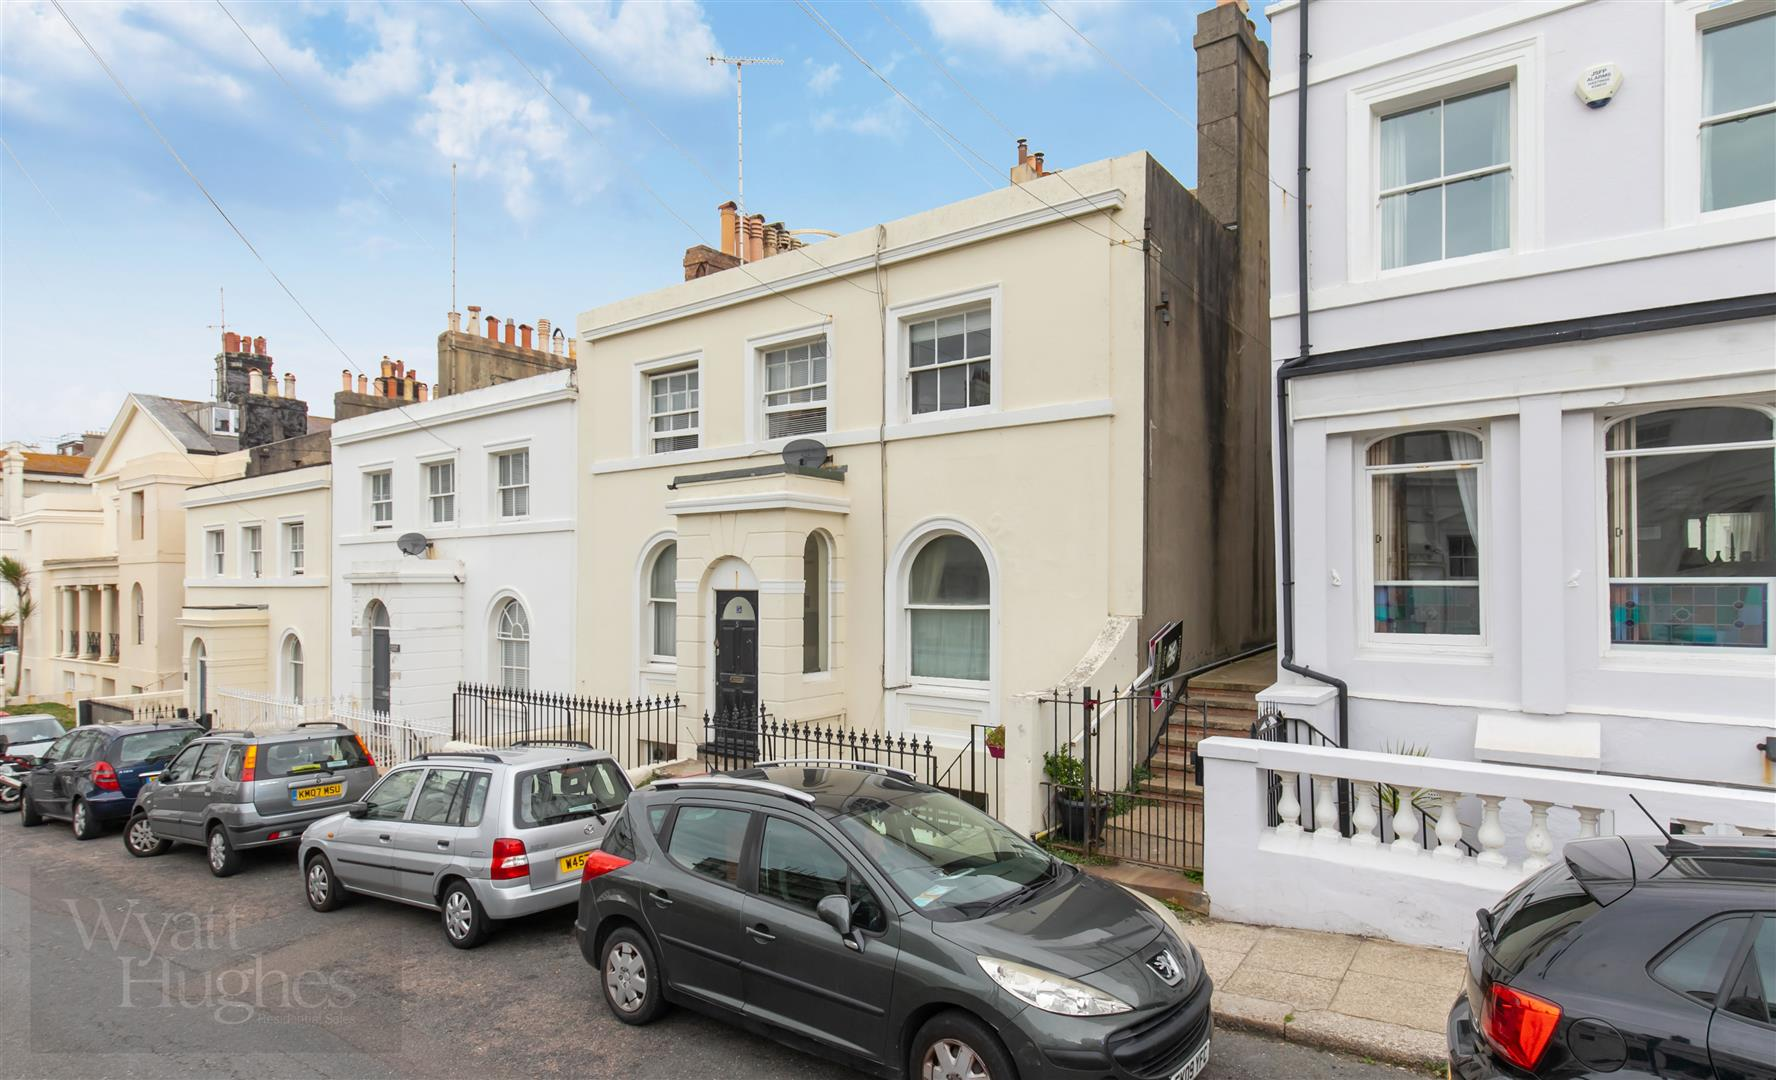 1 bed apartment for sale in East Ascent, St. Leonards-On-Sea, TN38